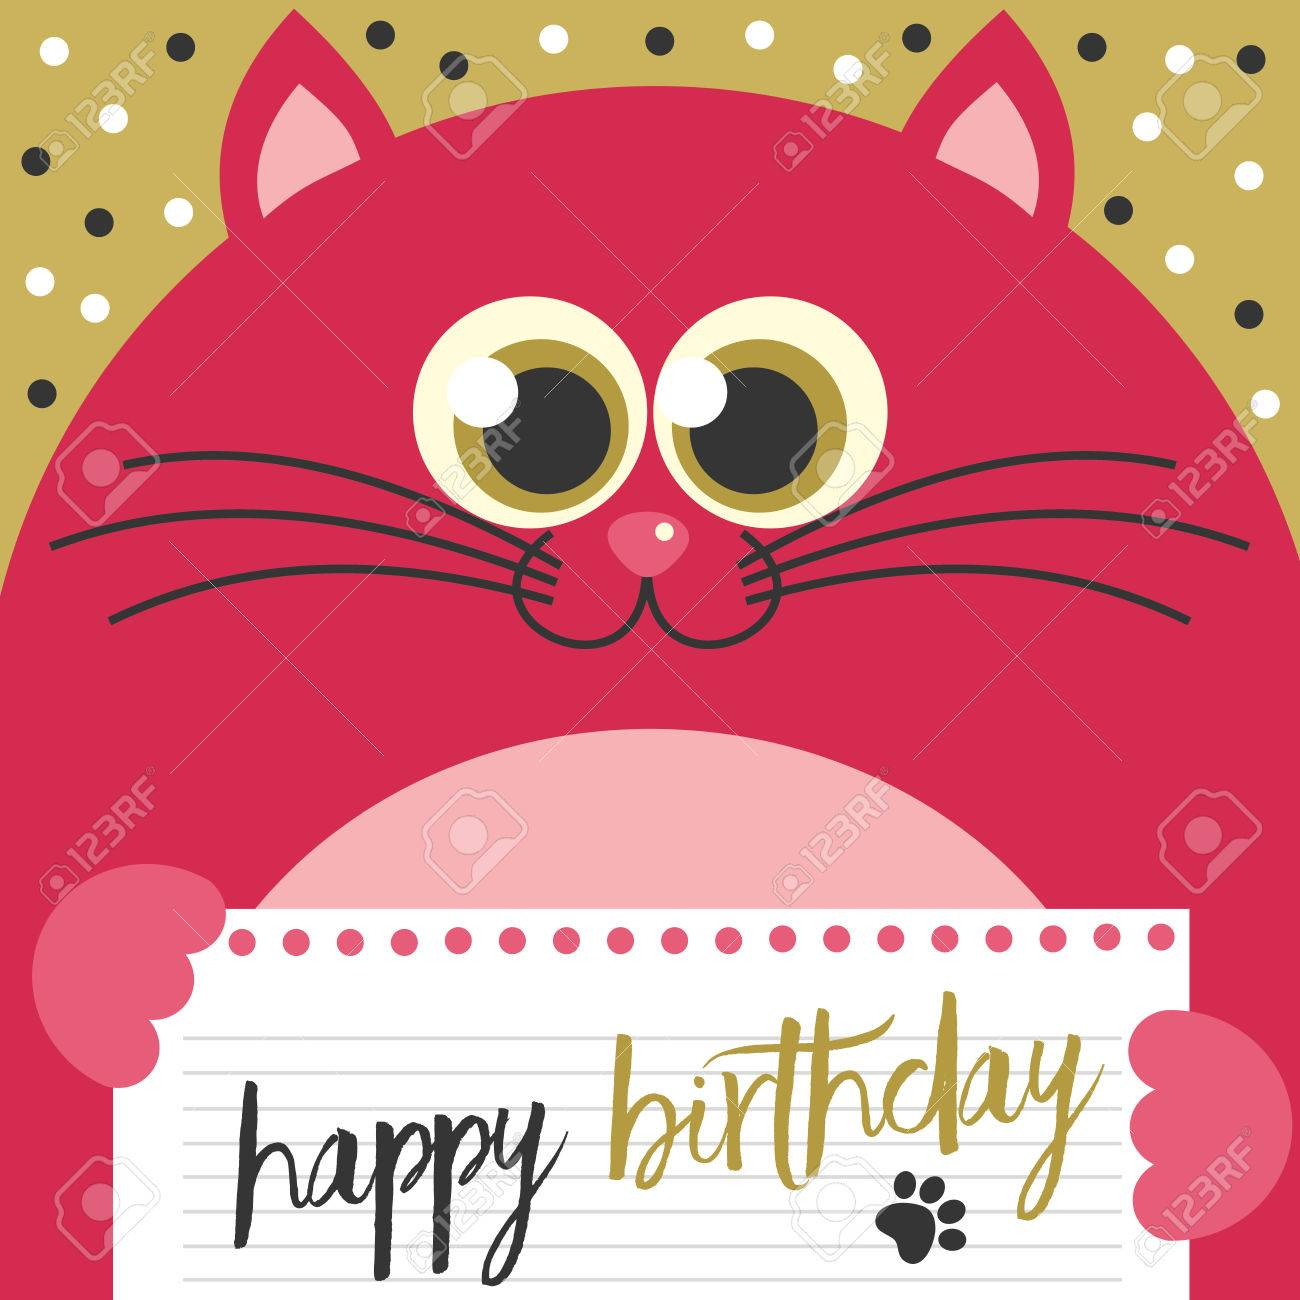 cute creative cards templates with happy birthday theme design